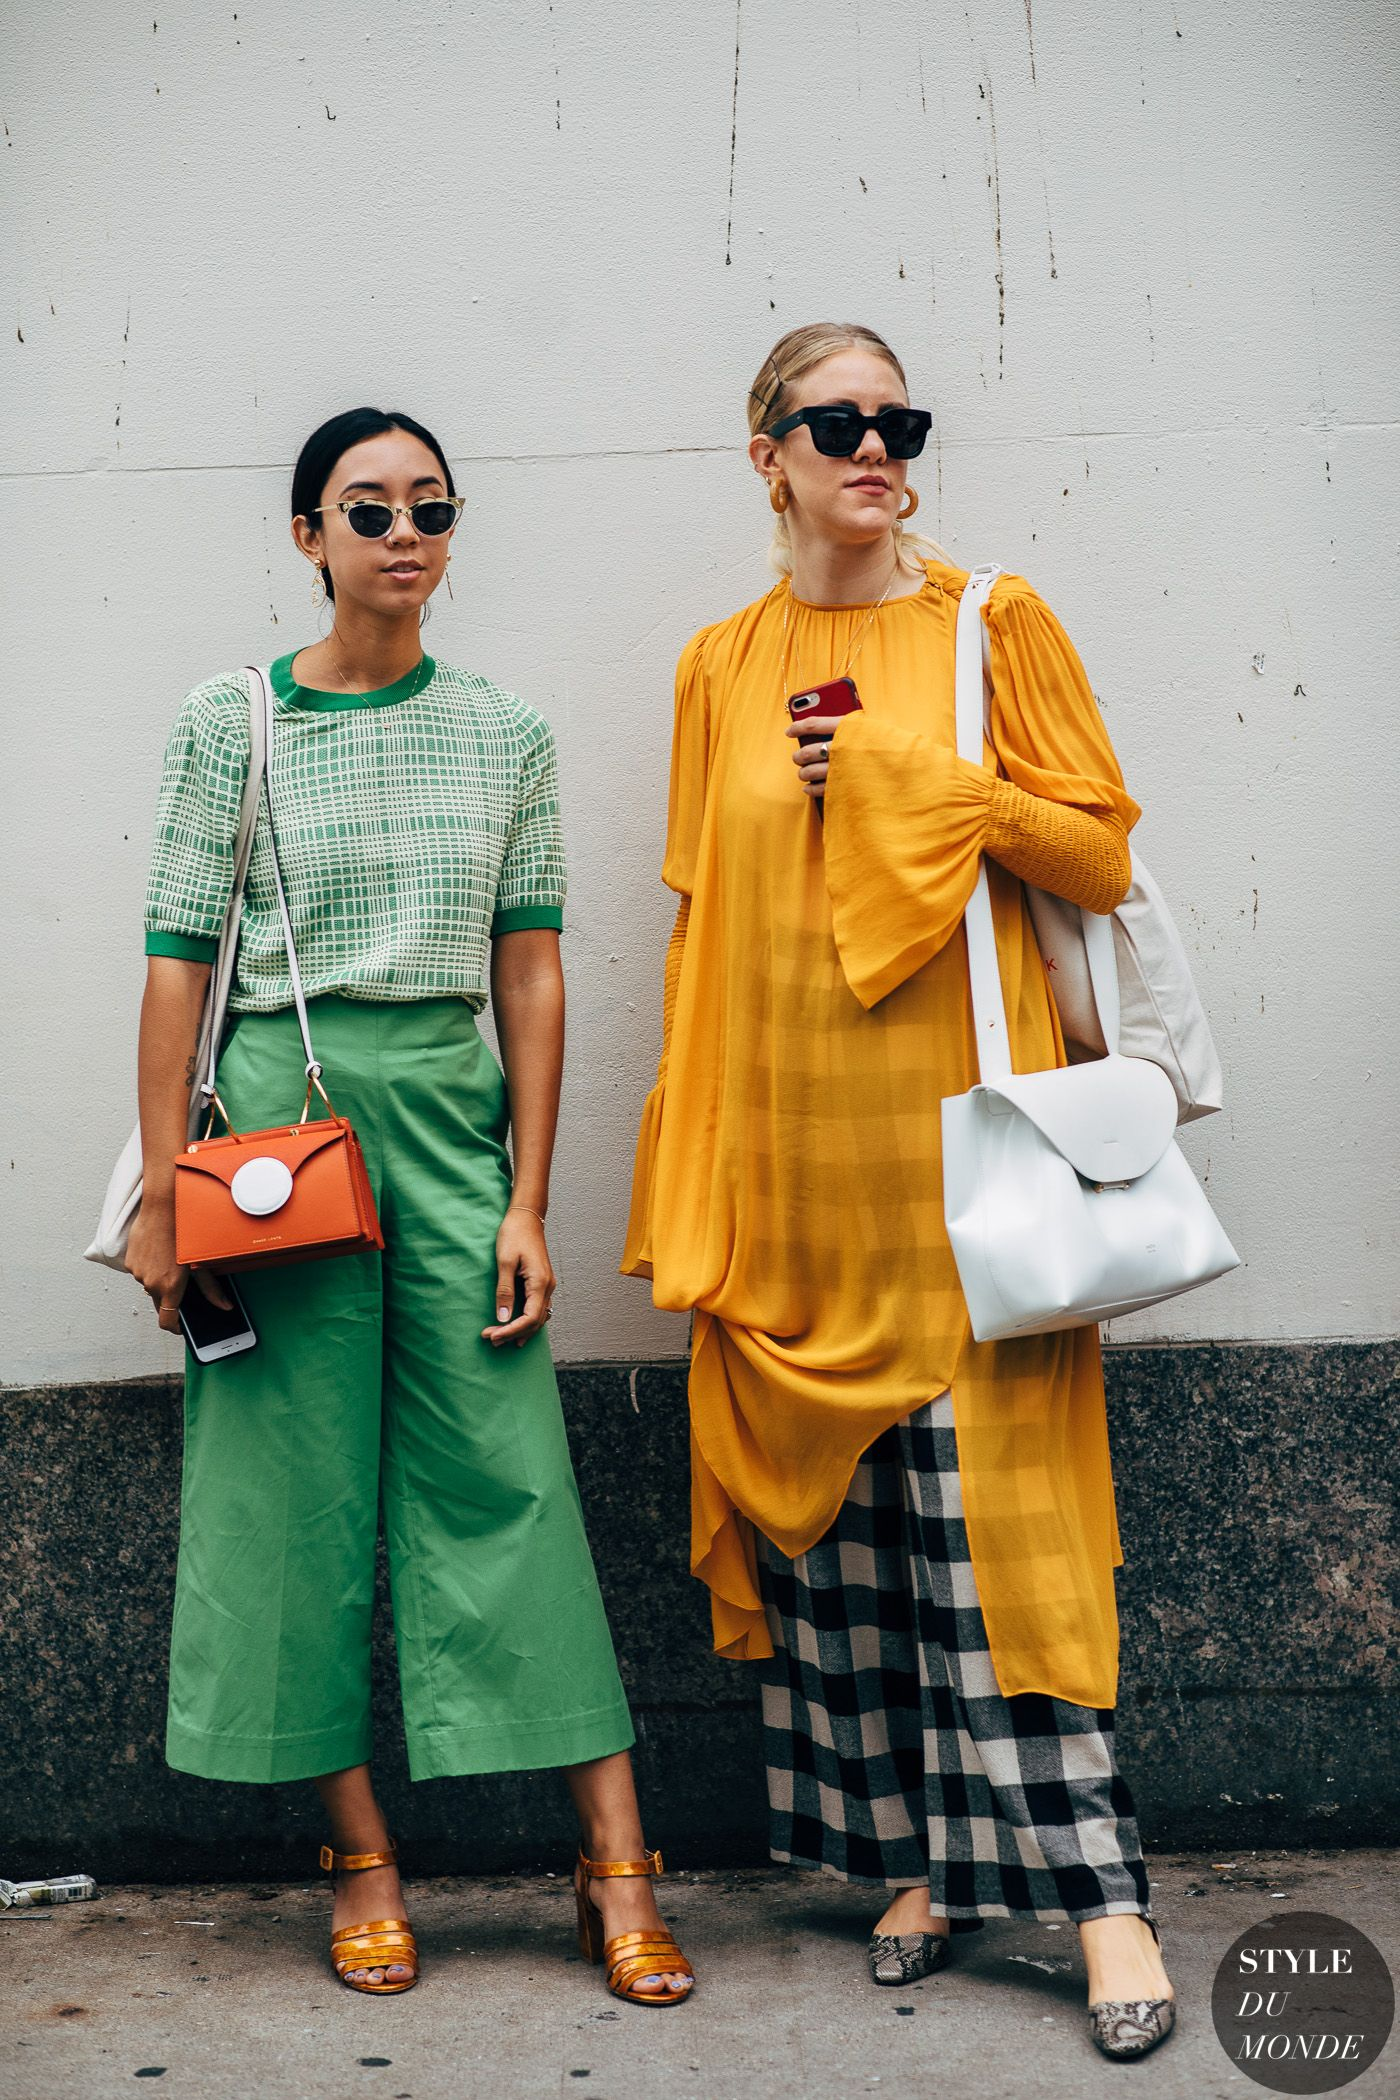 New York SS 2019 Street Style – STIL DU MONDE | Street style street fashion photos